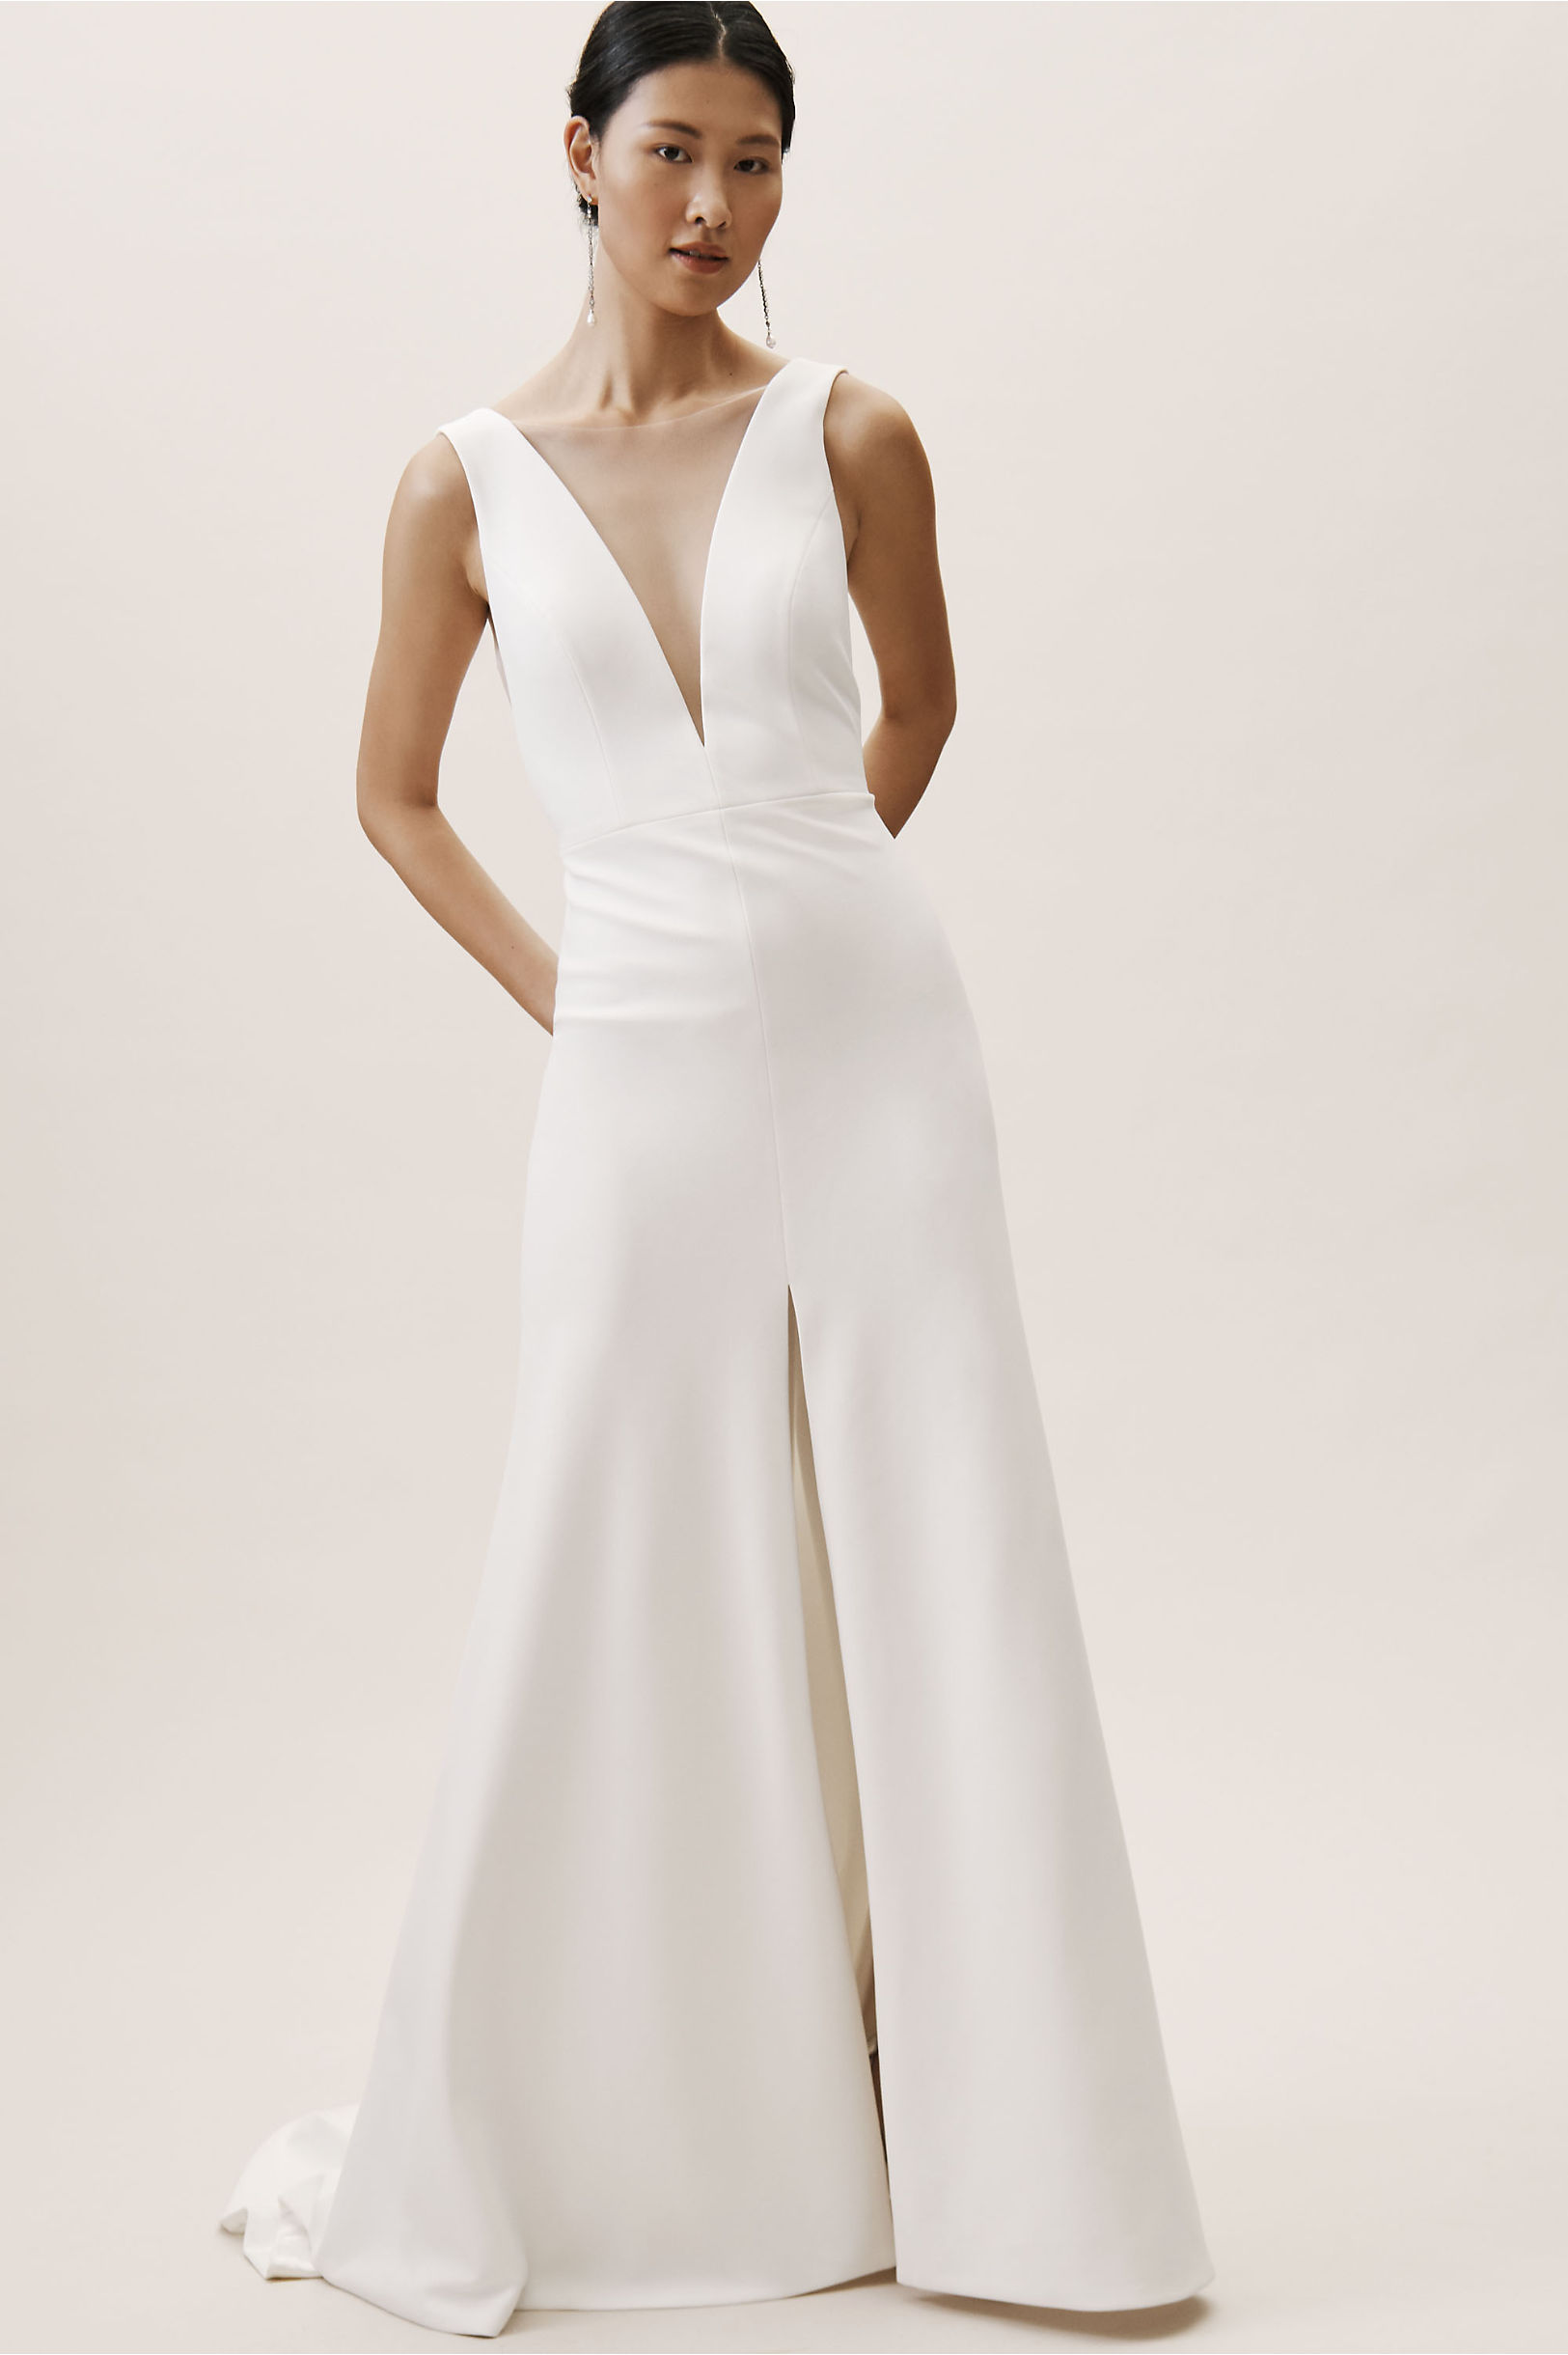 Holloway gown with deep v neck and high skirt slit BHLDN 2019 Spring wedding collection